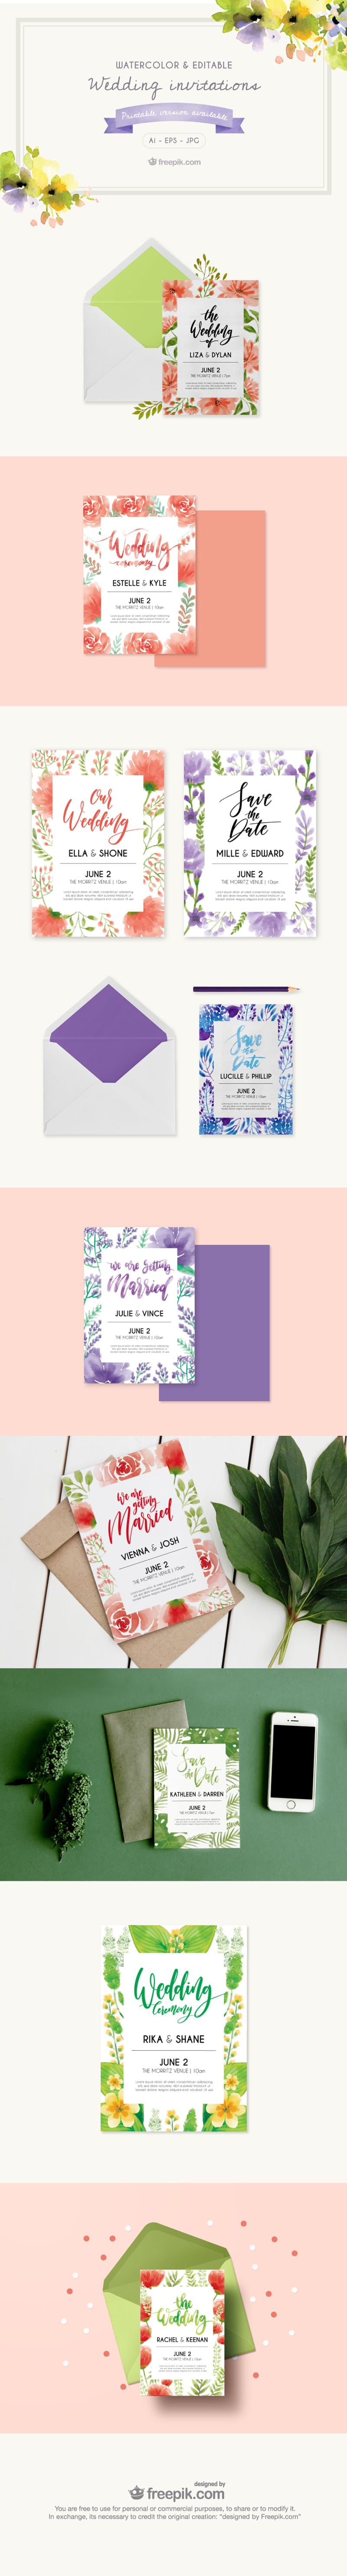 Free Wedding Invitation Templates | Creative Beacon